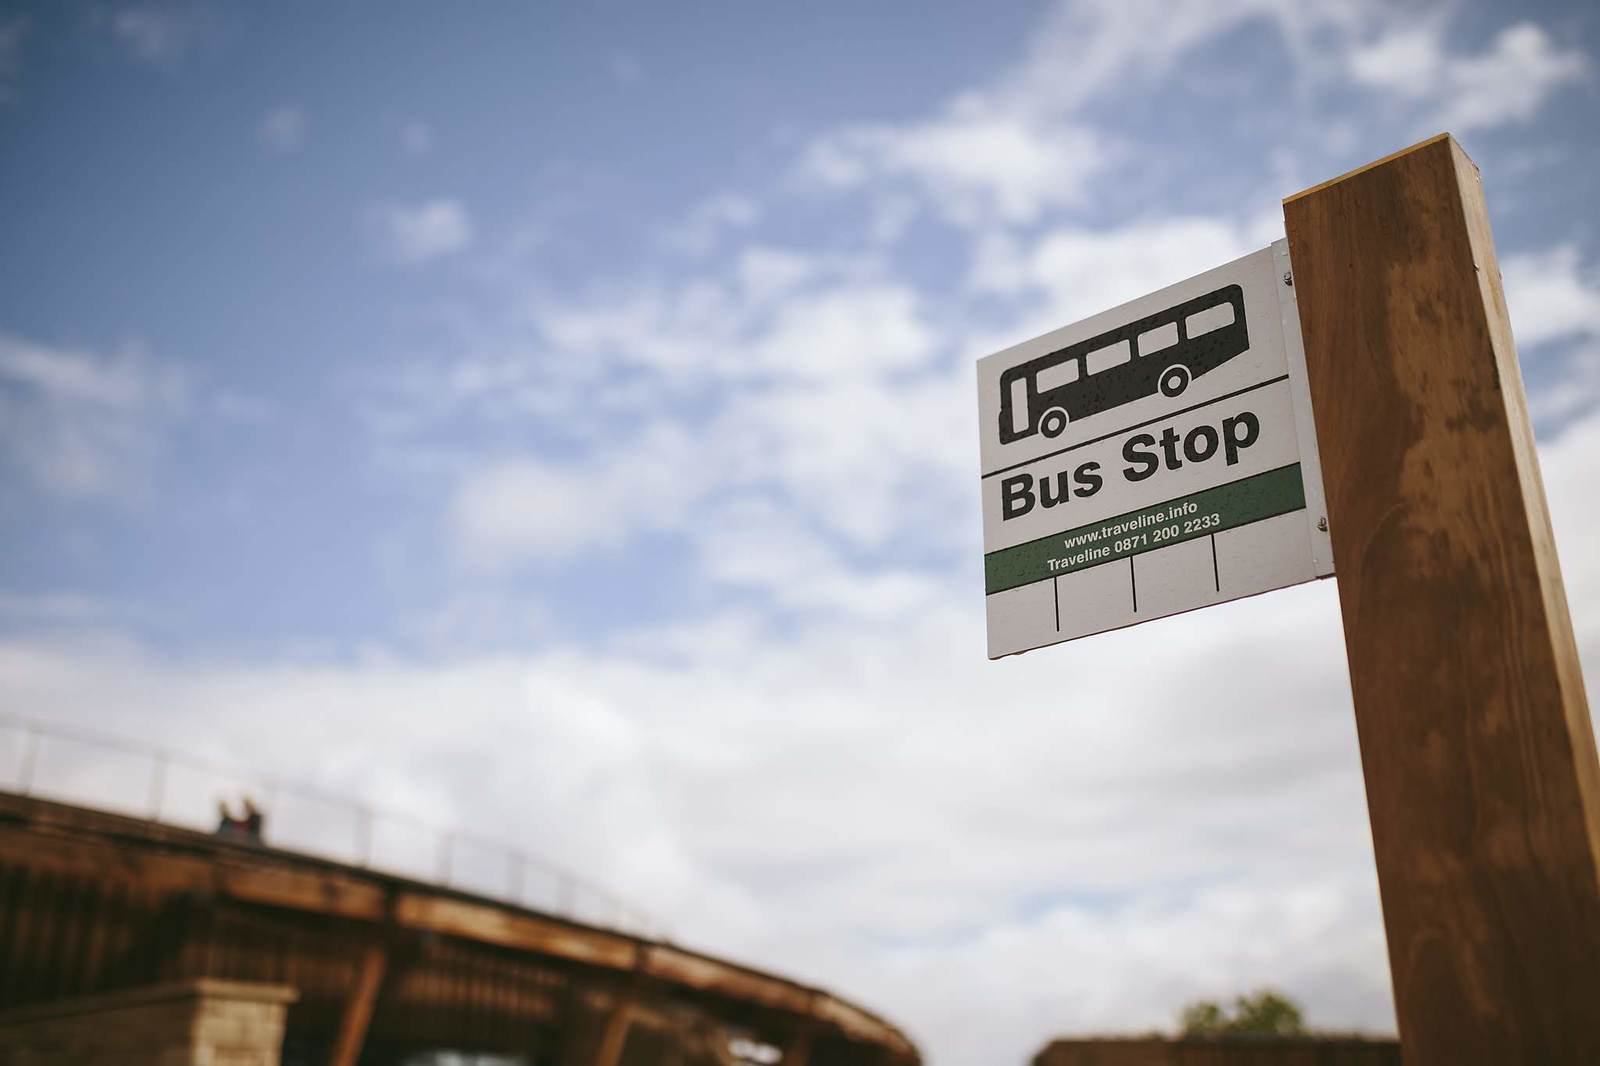 A bus stop sign at The Sill: National Landscape Discovery Centre